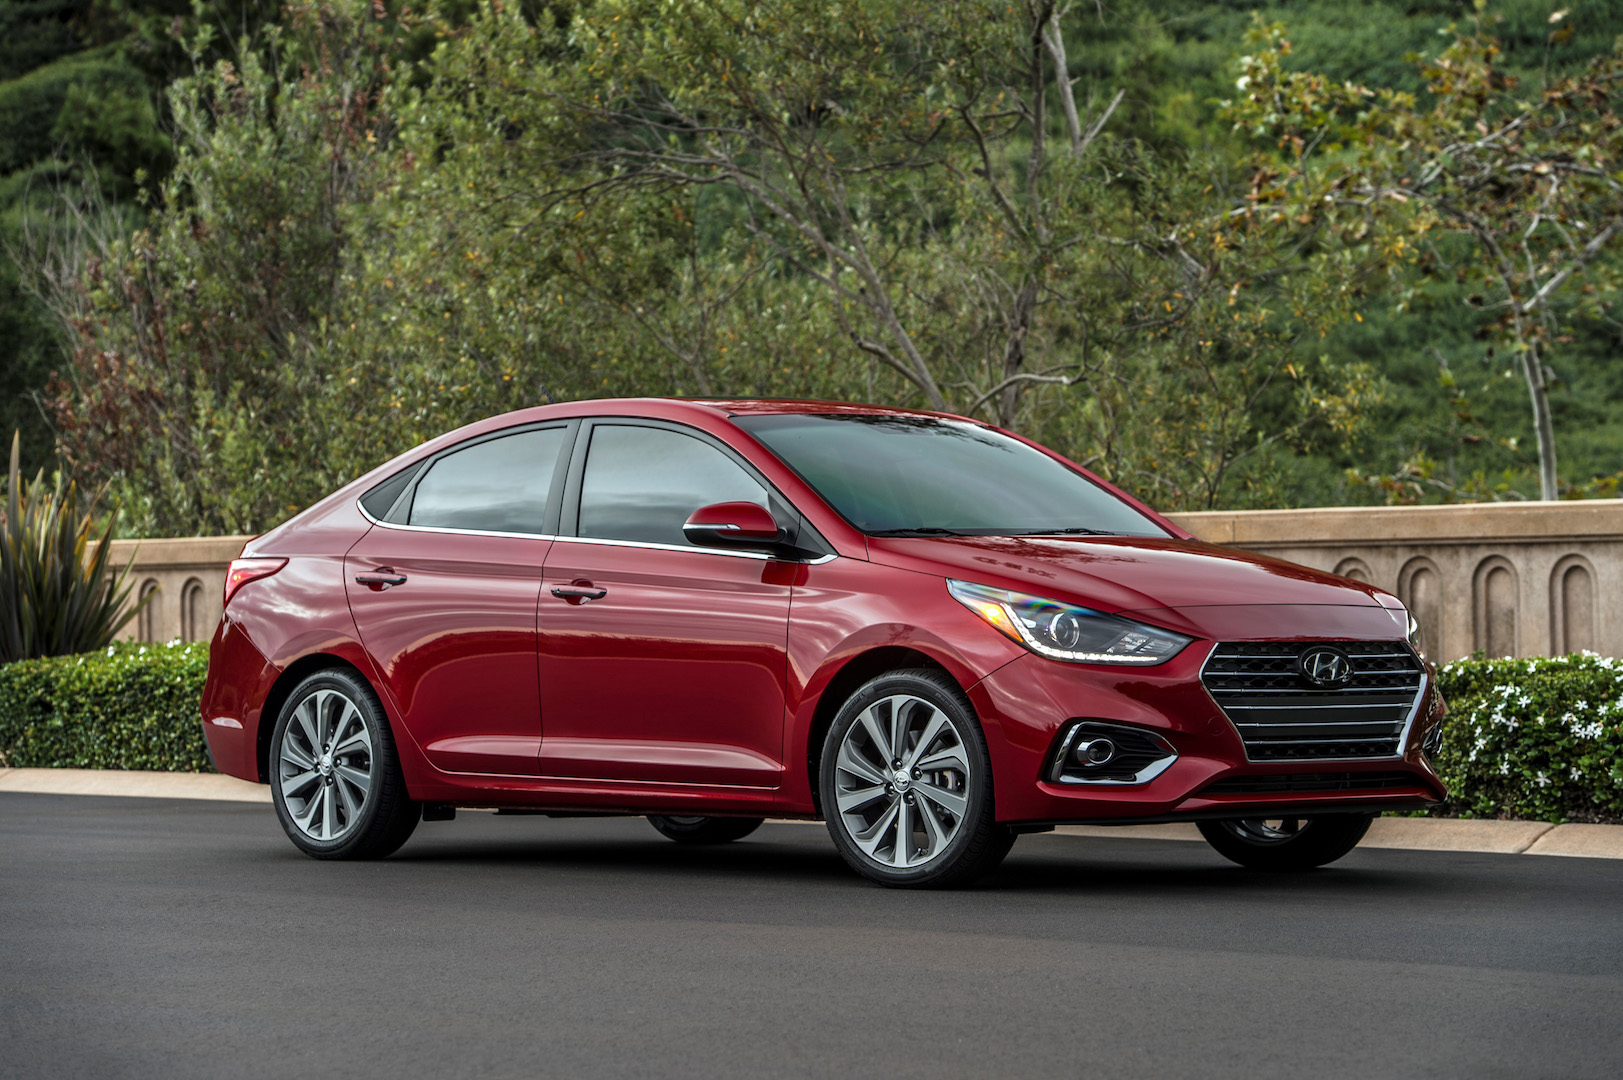 2019 Hyundai Accent Review, Ratings, Specs, Prices, And